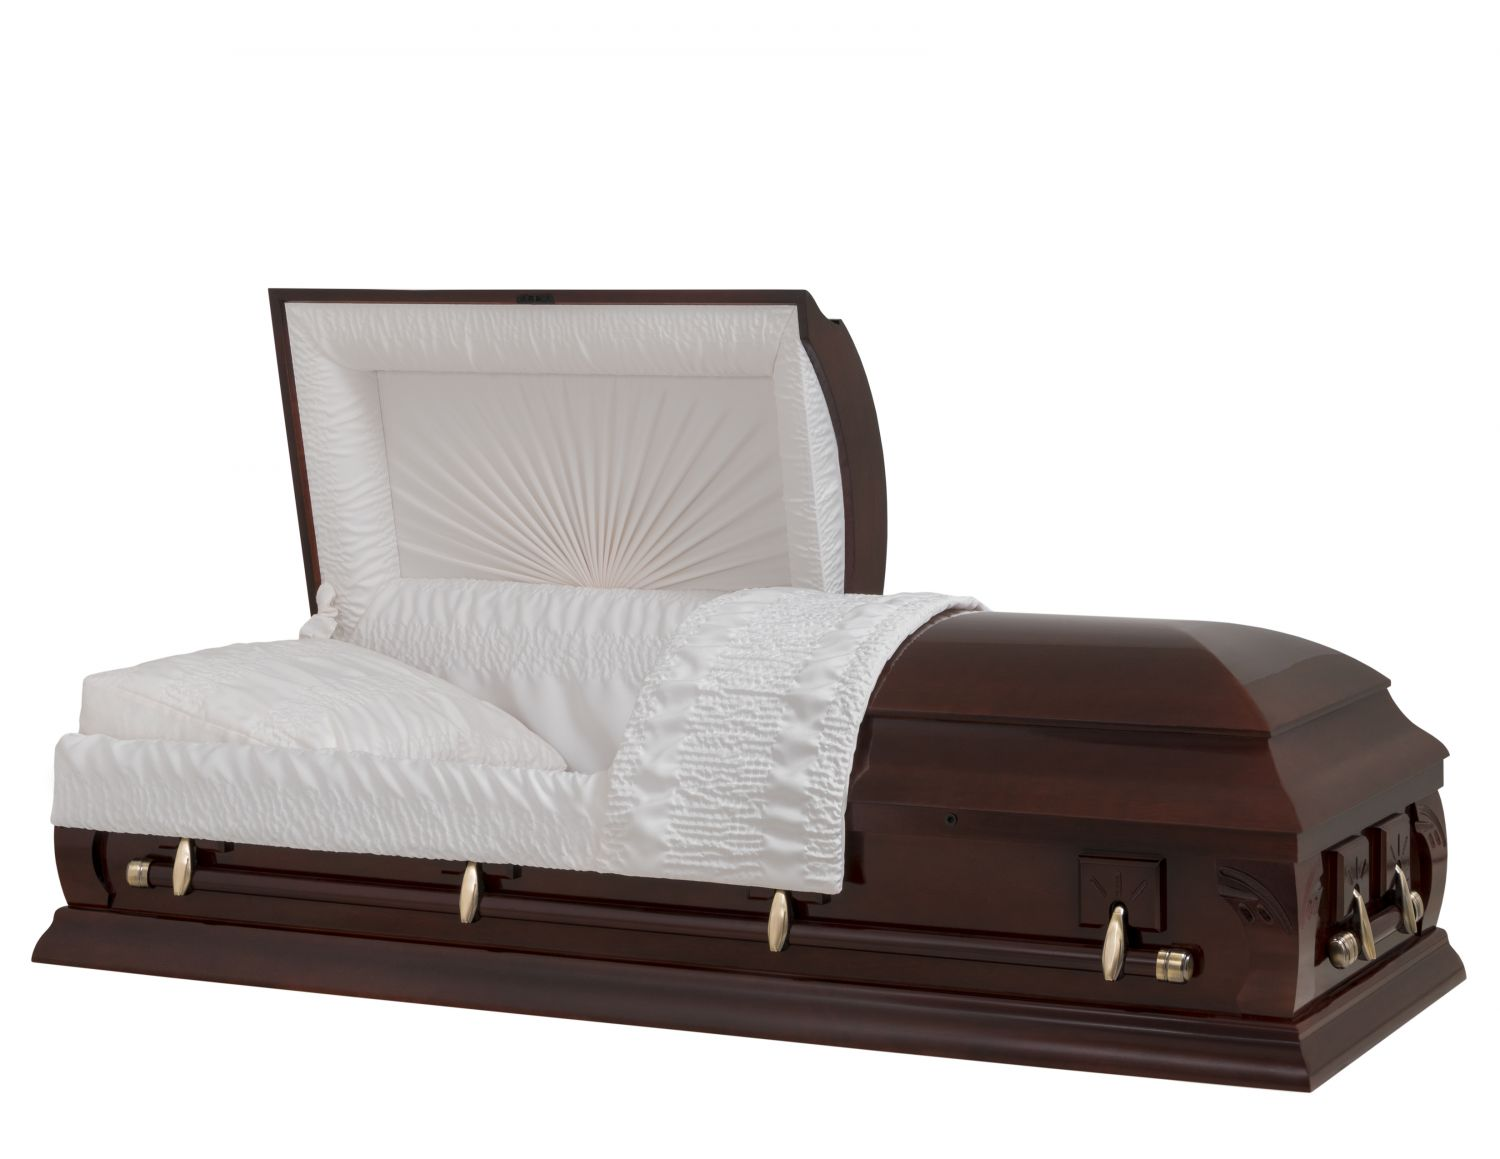 Concept Caskets 23223-00002-N POPLAR CASKET POLISHED CREPE VICTORY MAHOGANY ADJUSTABLE BED YES W1542W-1    4 X 2 ANTIQUE GOLD